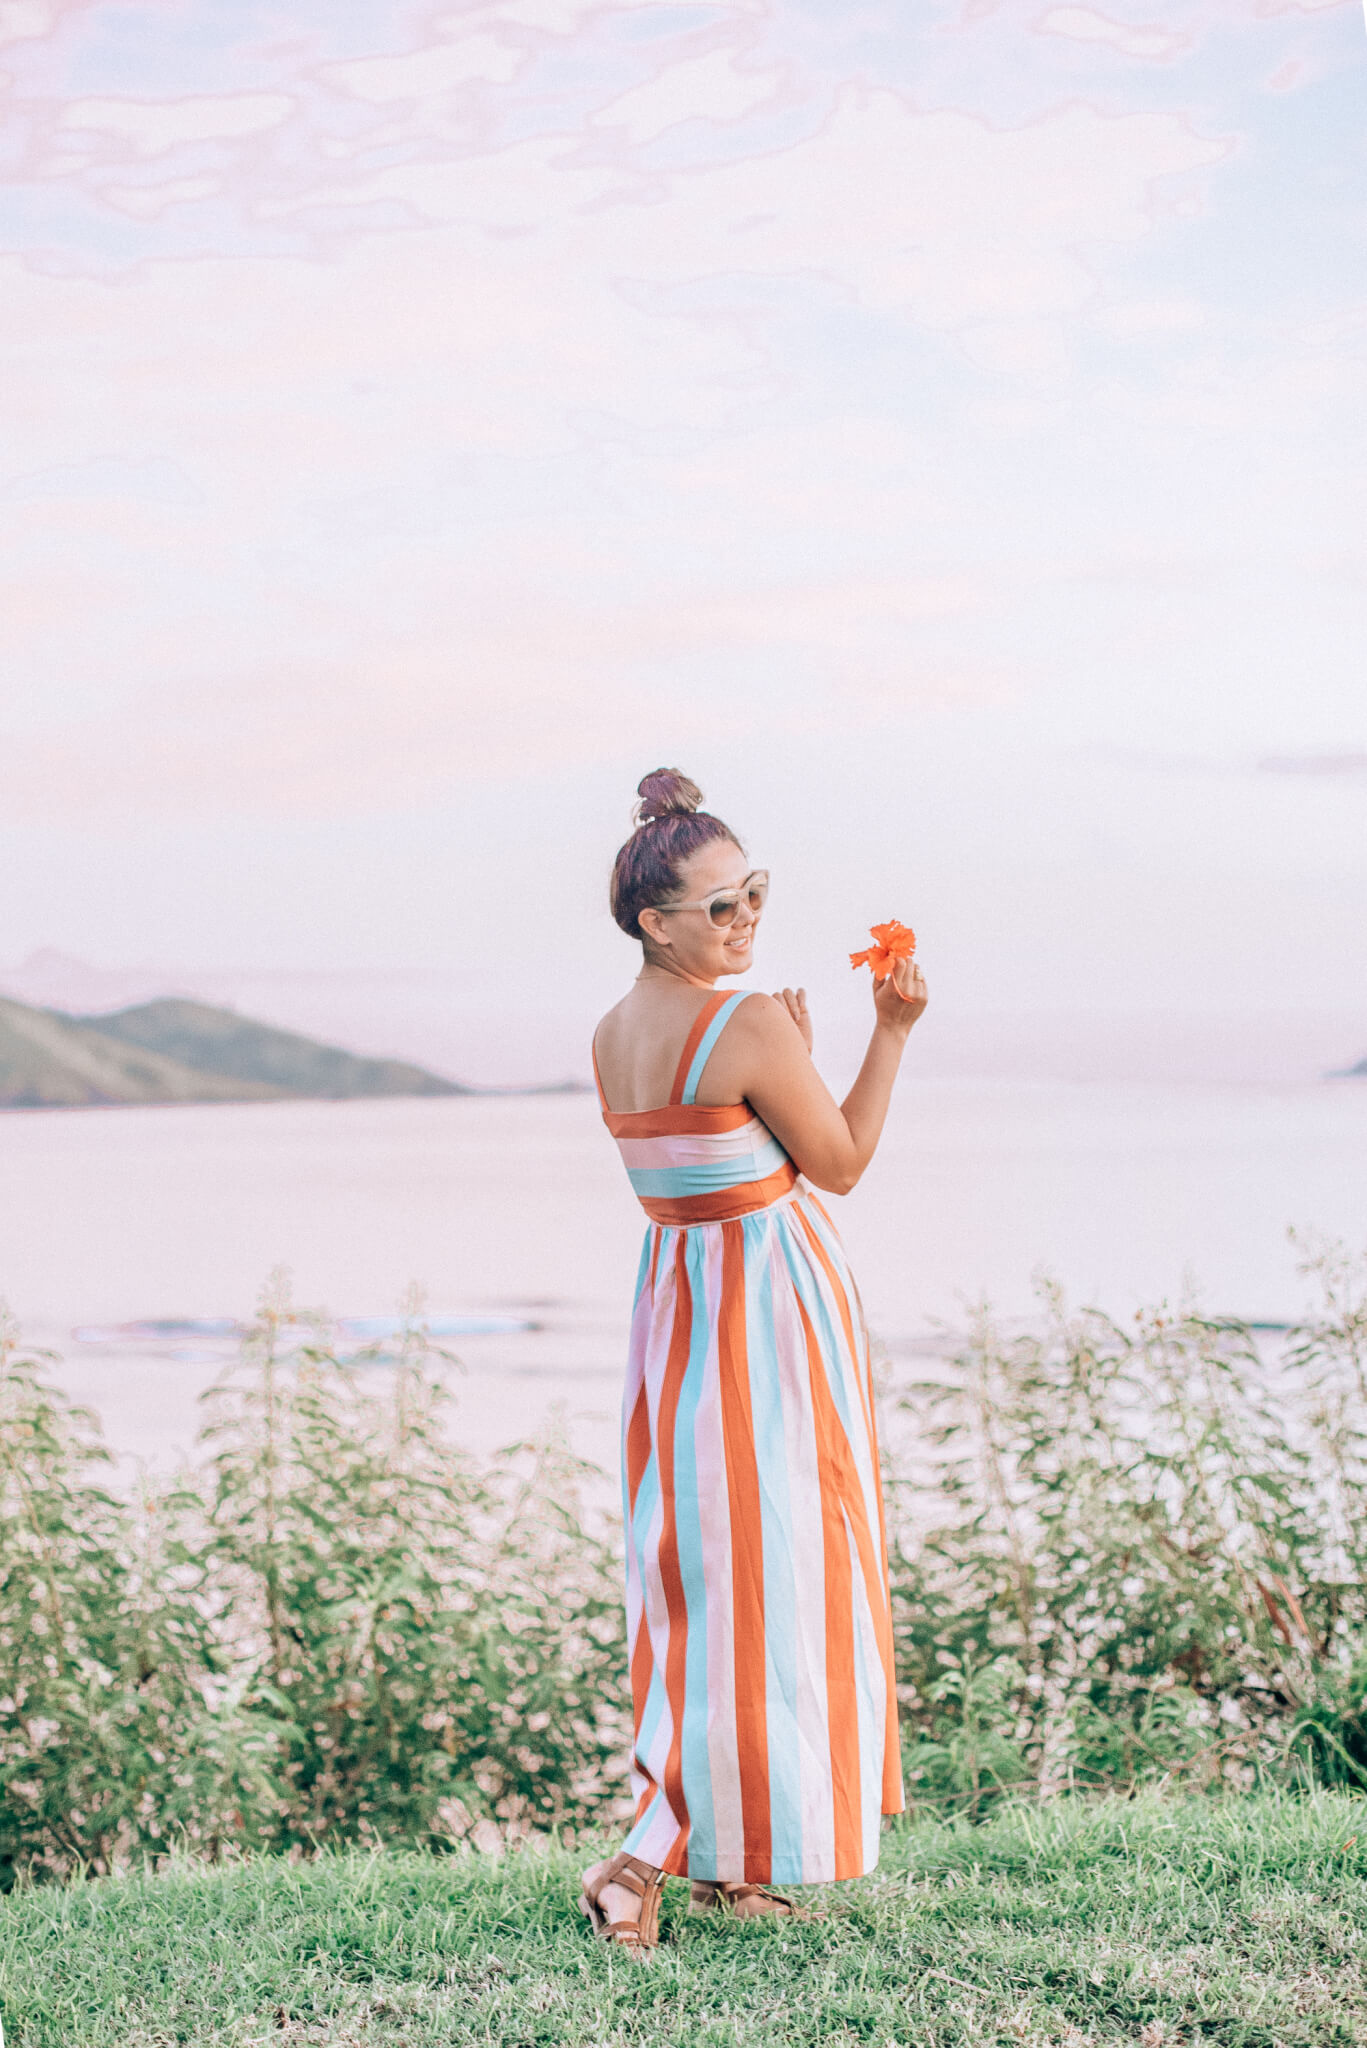 Valentino Striped Dress - Sherbet Sunset featured by popular San Francisco fashion blogger What The Fab